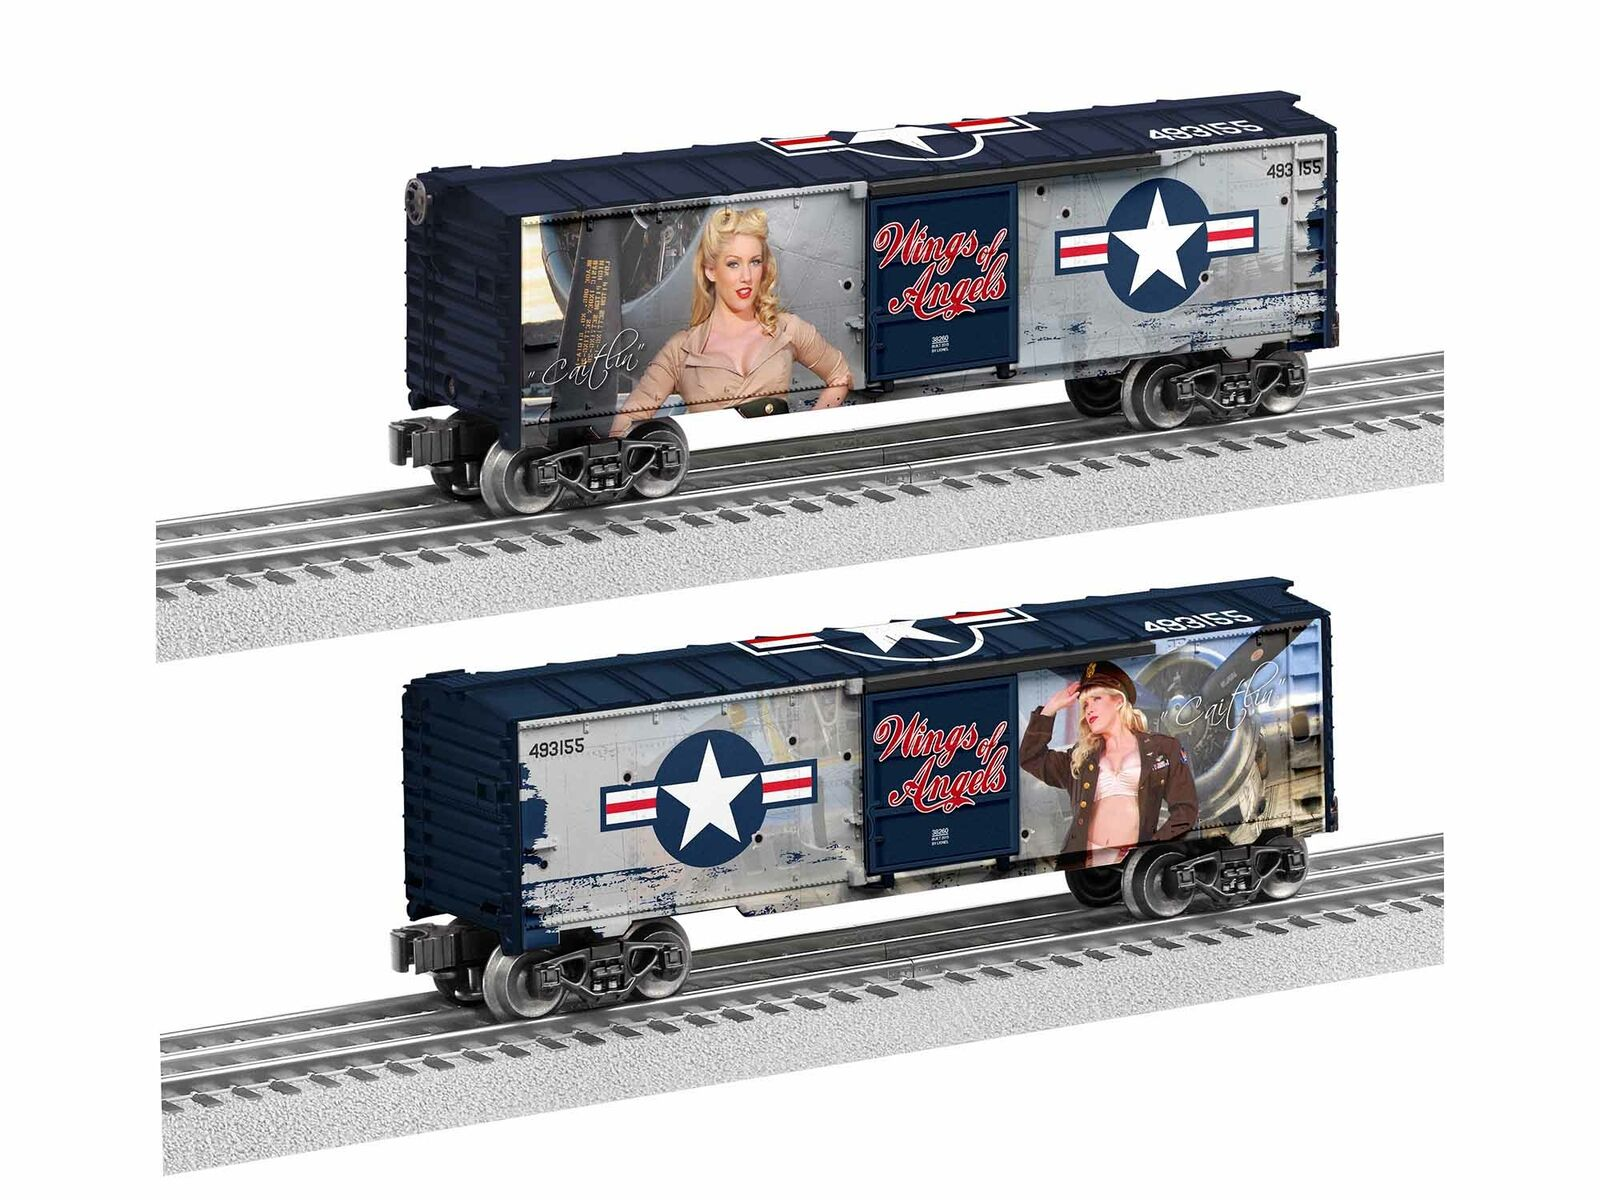 Lionel 1938260 Wings of Angels Caitlin scatola auto o GAUGE TRENI fatto IN USA